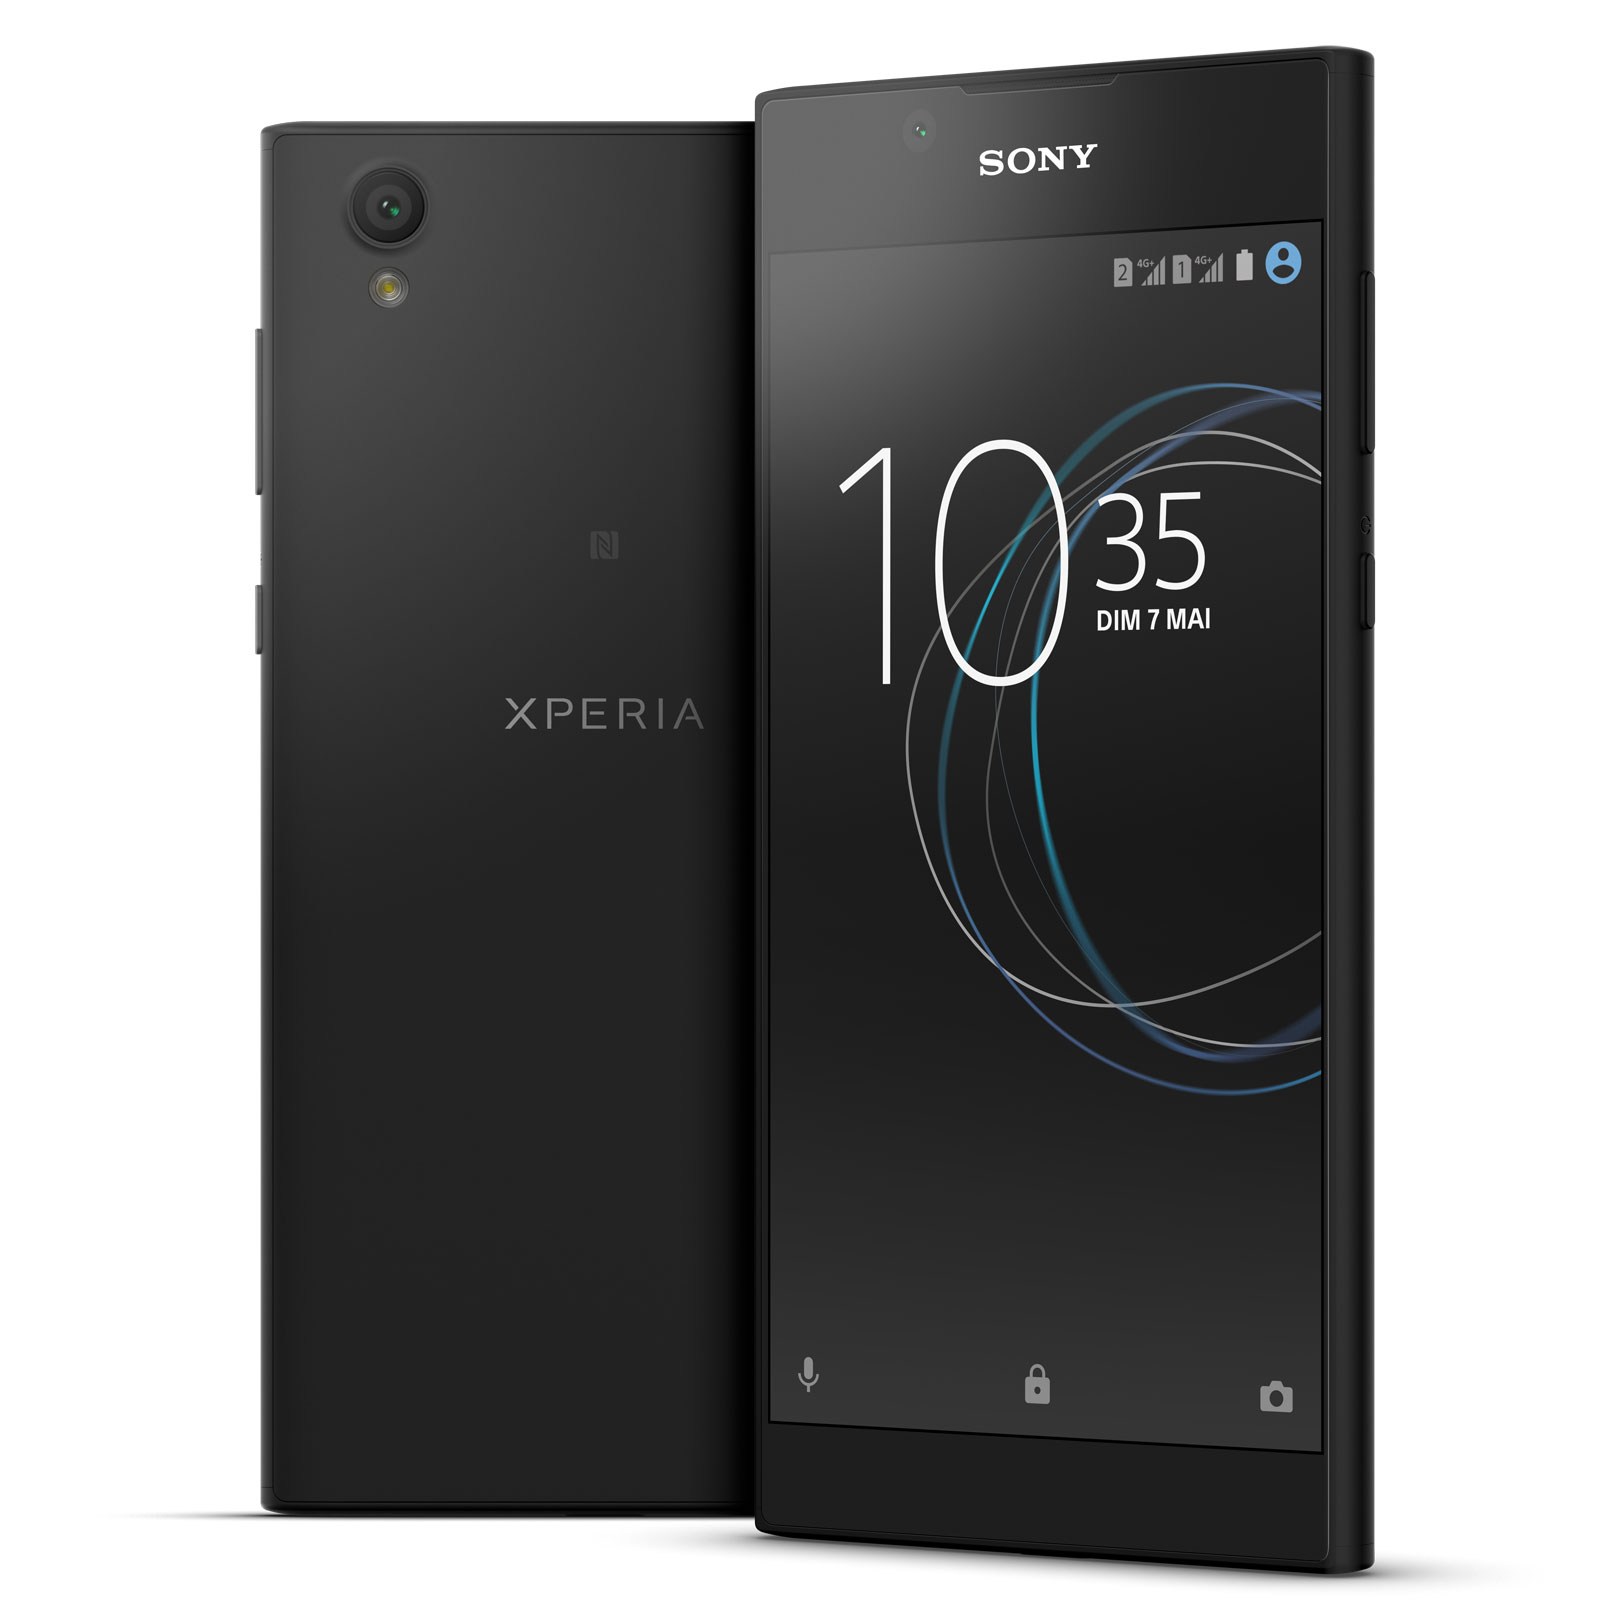 sony xperia l1 dual sim 16 go noir mobile smartphone. Black Bedroom Furniture Sets. Home Design Ideas